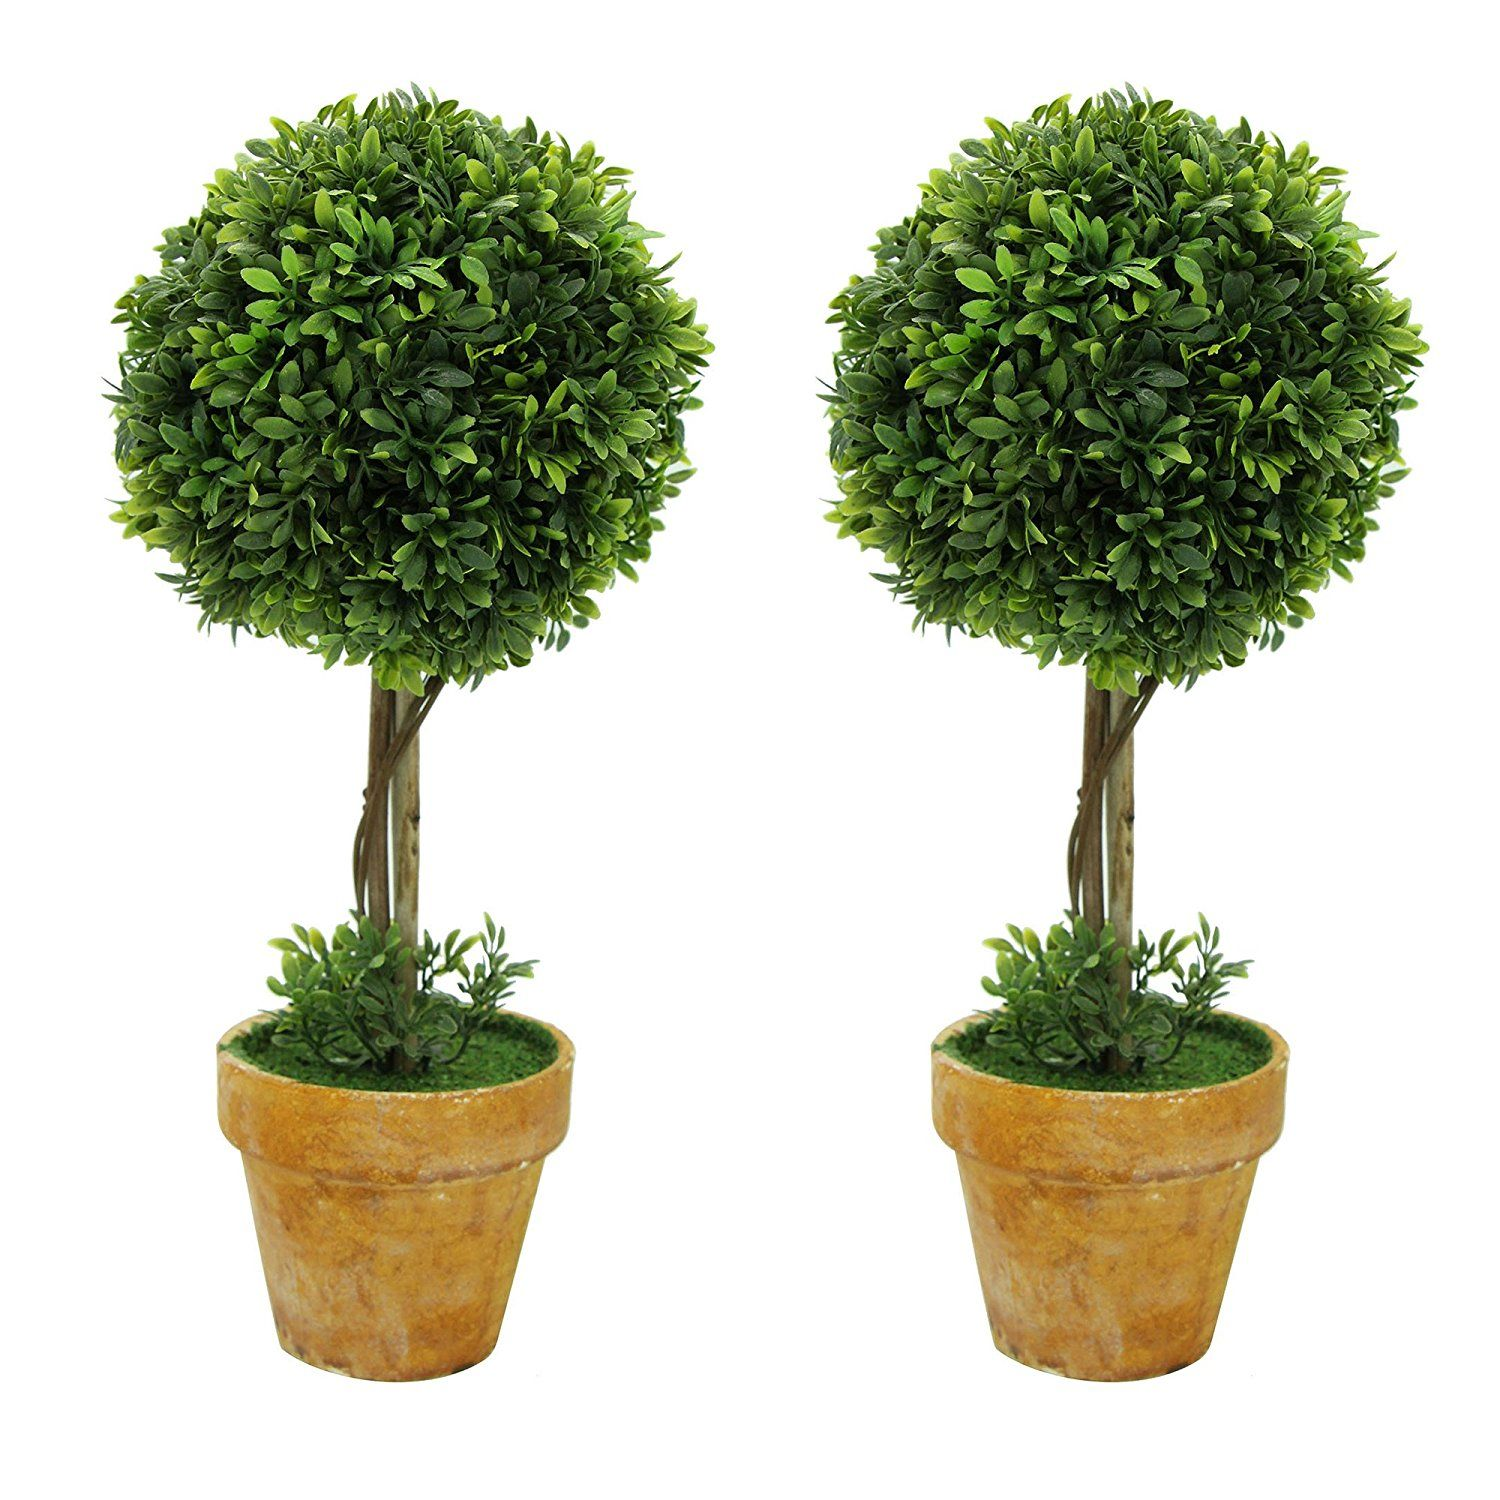 Keelorn cute ball shape greenery artificial plants and for Artificial plants indoor decoration